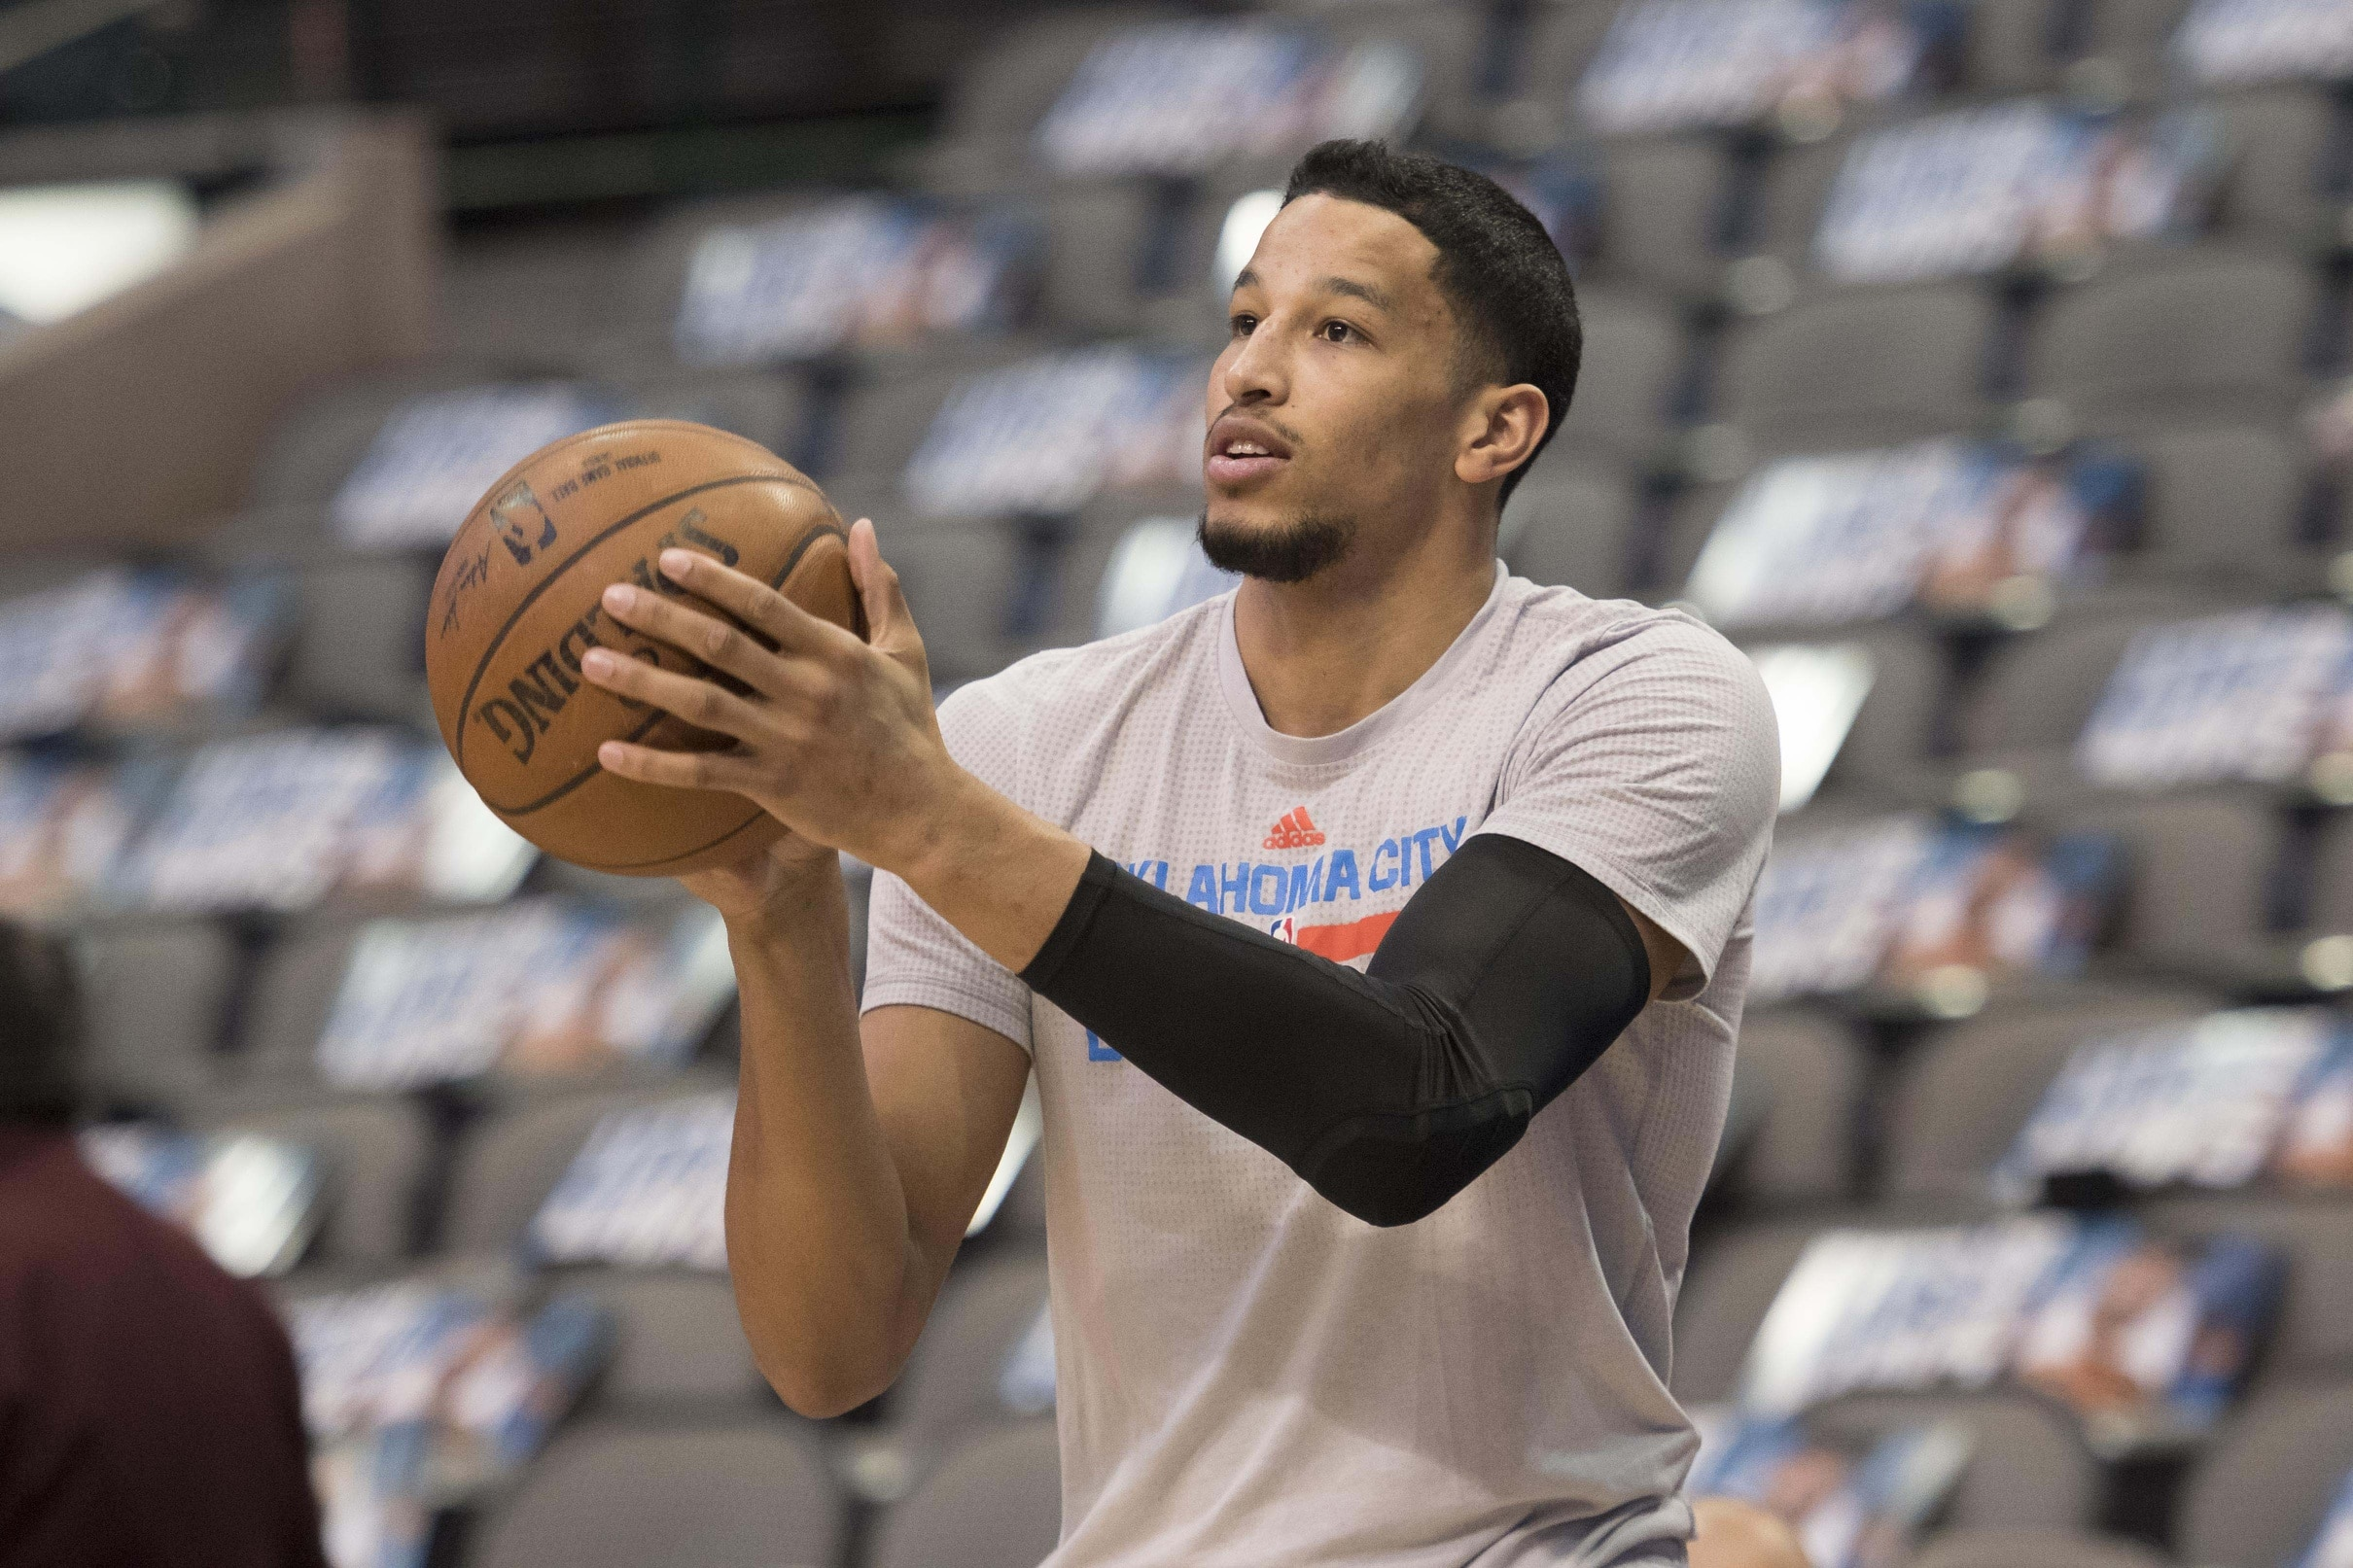 Mar 27, 2017; Dallas, TX, USA; Oklahoma City Thunder forward Andre Roberson (21) warms up prior to the game against the Dallas Mavericks at the American Airlines Center. Mandatory Credit: Jerome Miron-USA TODAY Sports